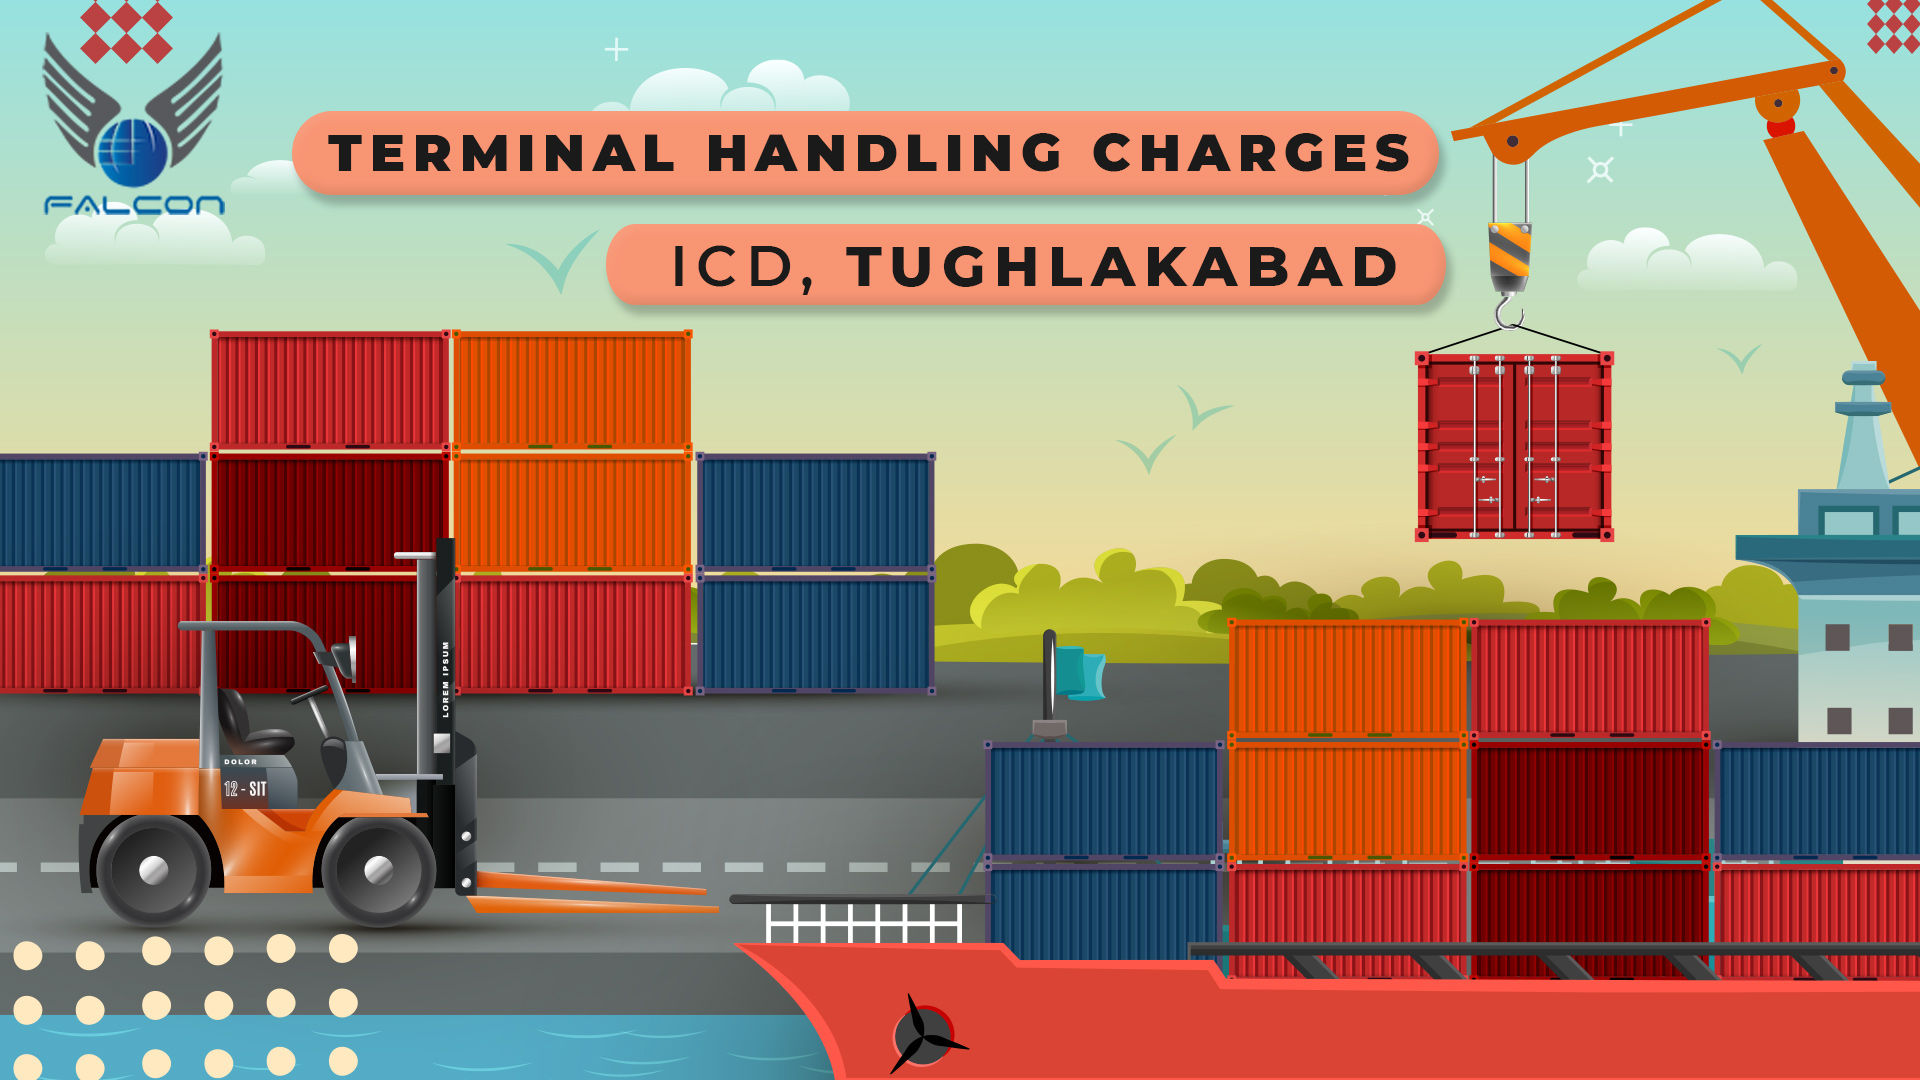 Terminal Handling Charges In ICD,-Tughlakabad